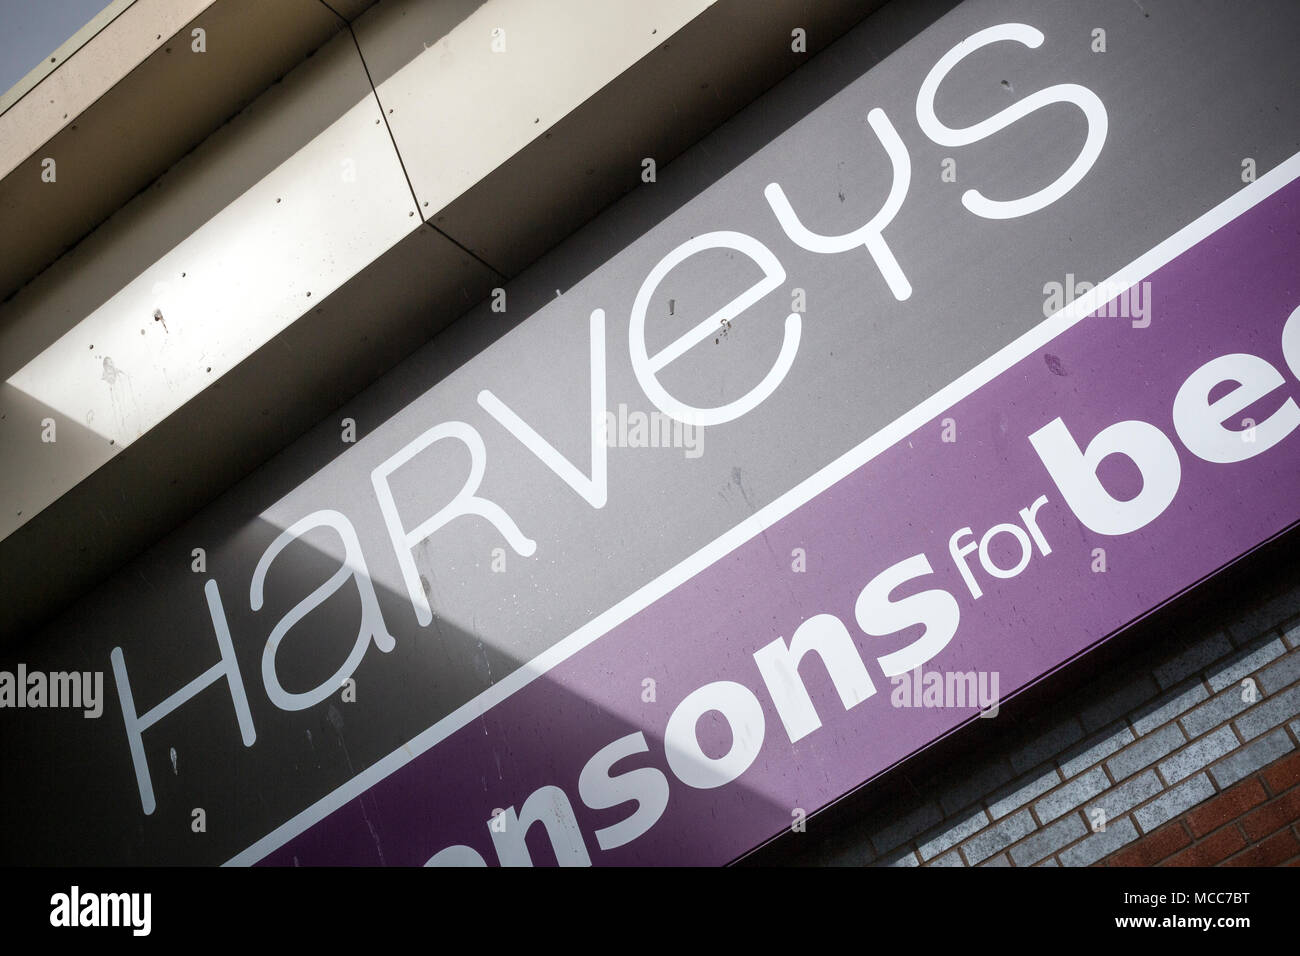 Harveys Furniture,Fabric Sofas,Dining Furniture, Offers,Bedroom Furniture ,BSI Kite Mark Approved,Handcrafted Exclusive Design Sofas , - Stock Image